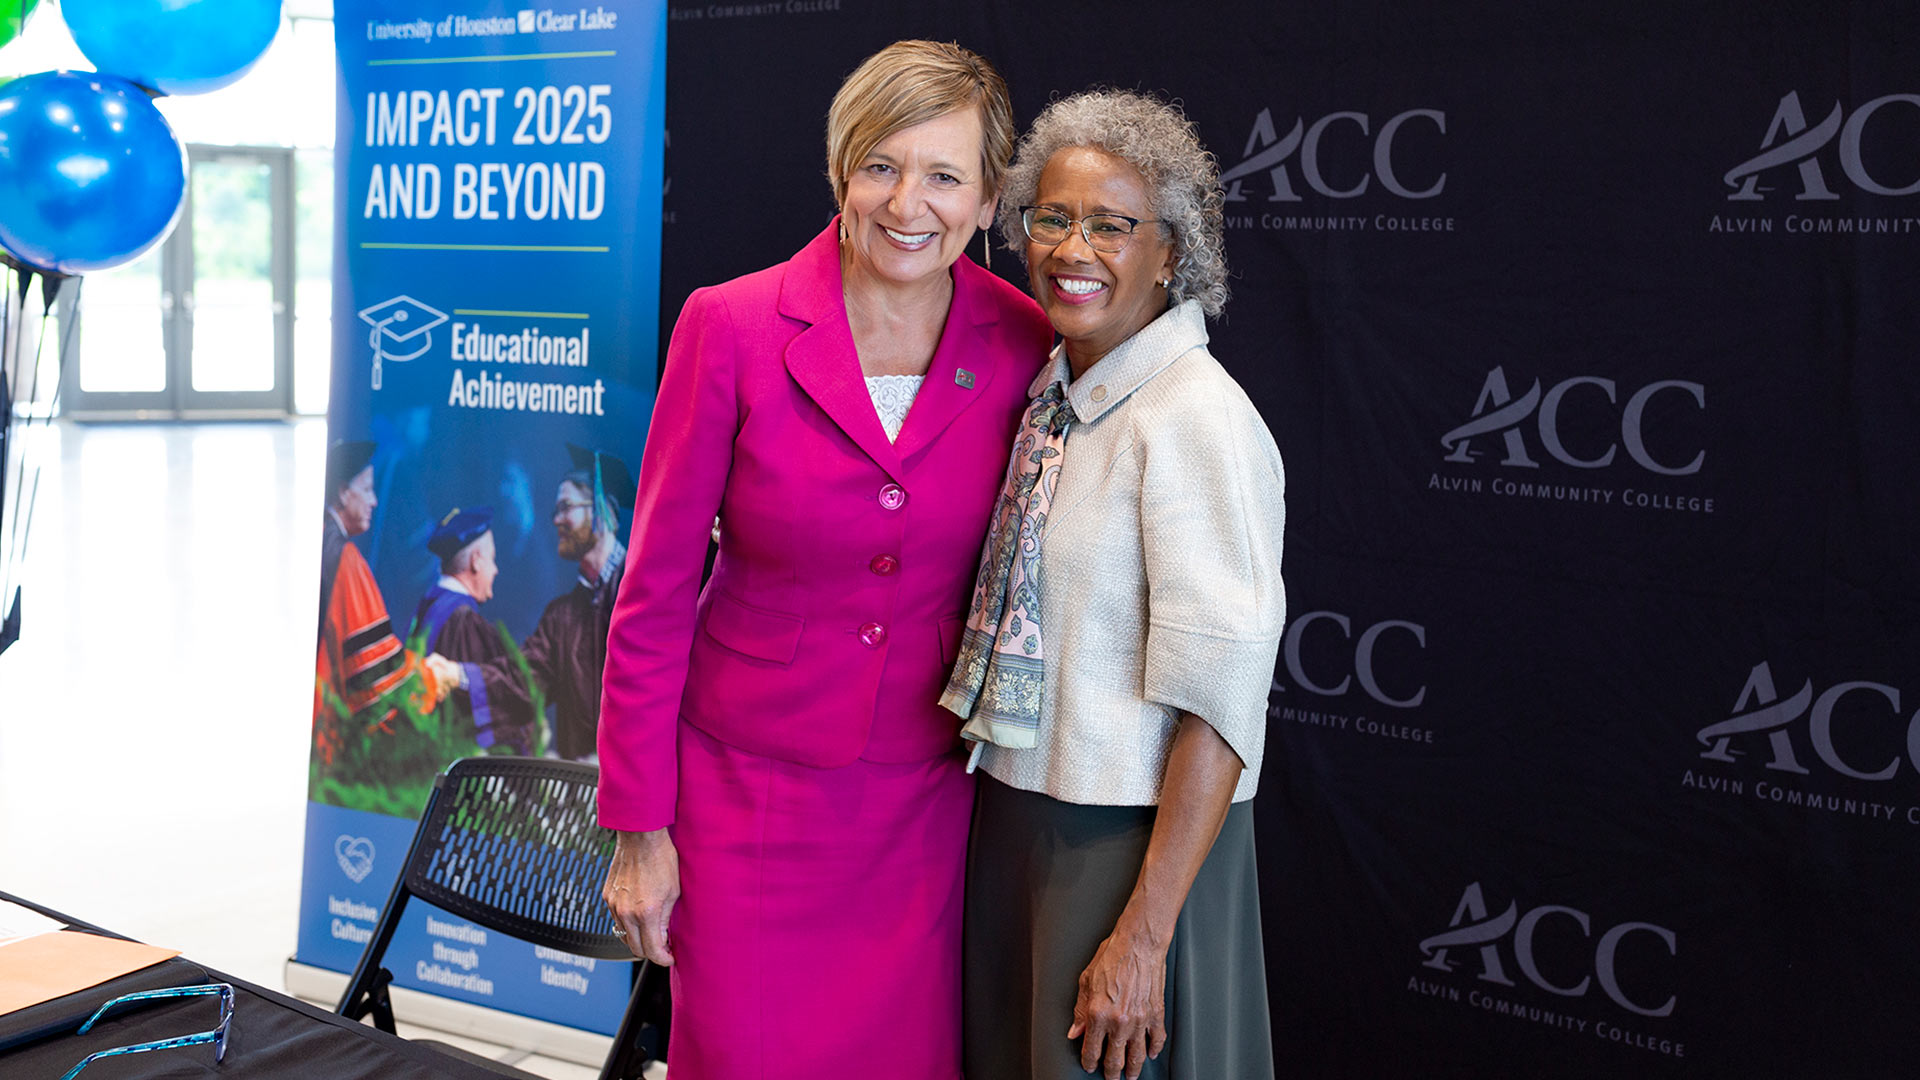 Nursing Students Get A Huge Advantage With A Joint UHCL-ACC Agreement